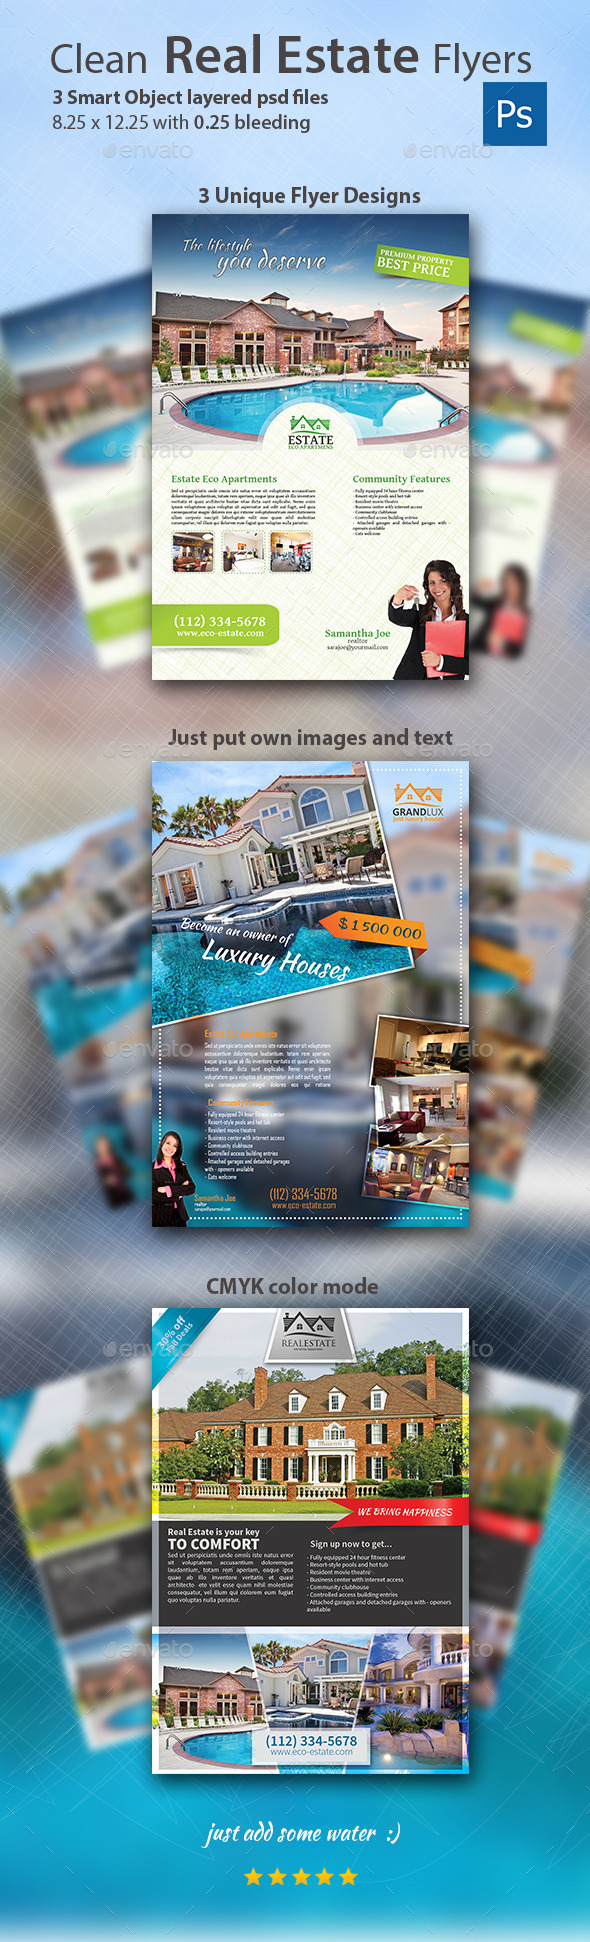 Clean Real Estate Flyers - Commerce Flyers